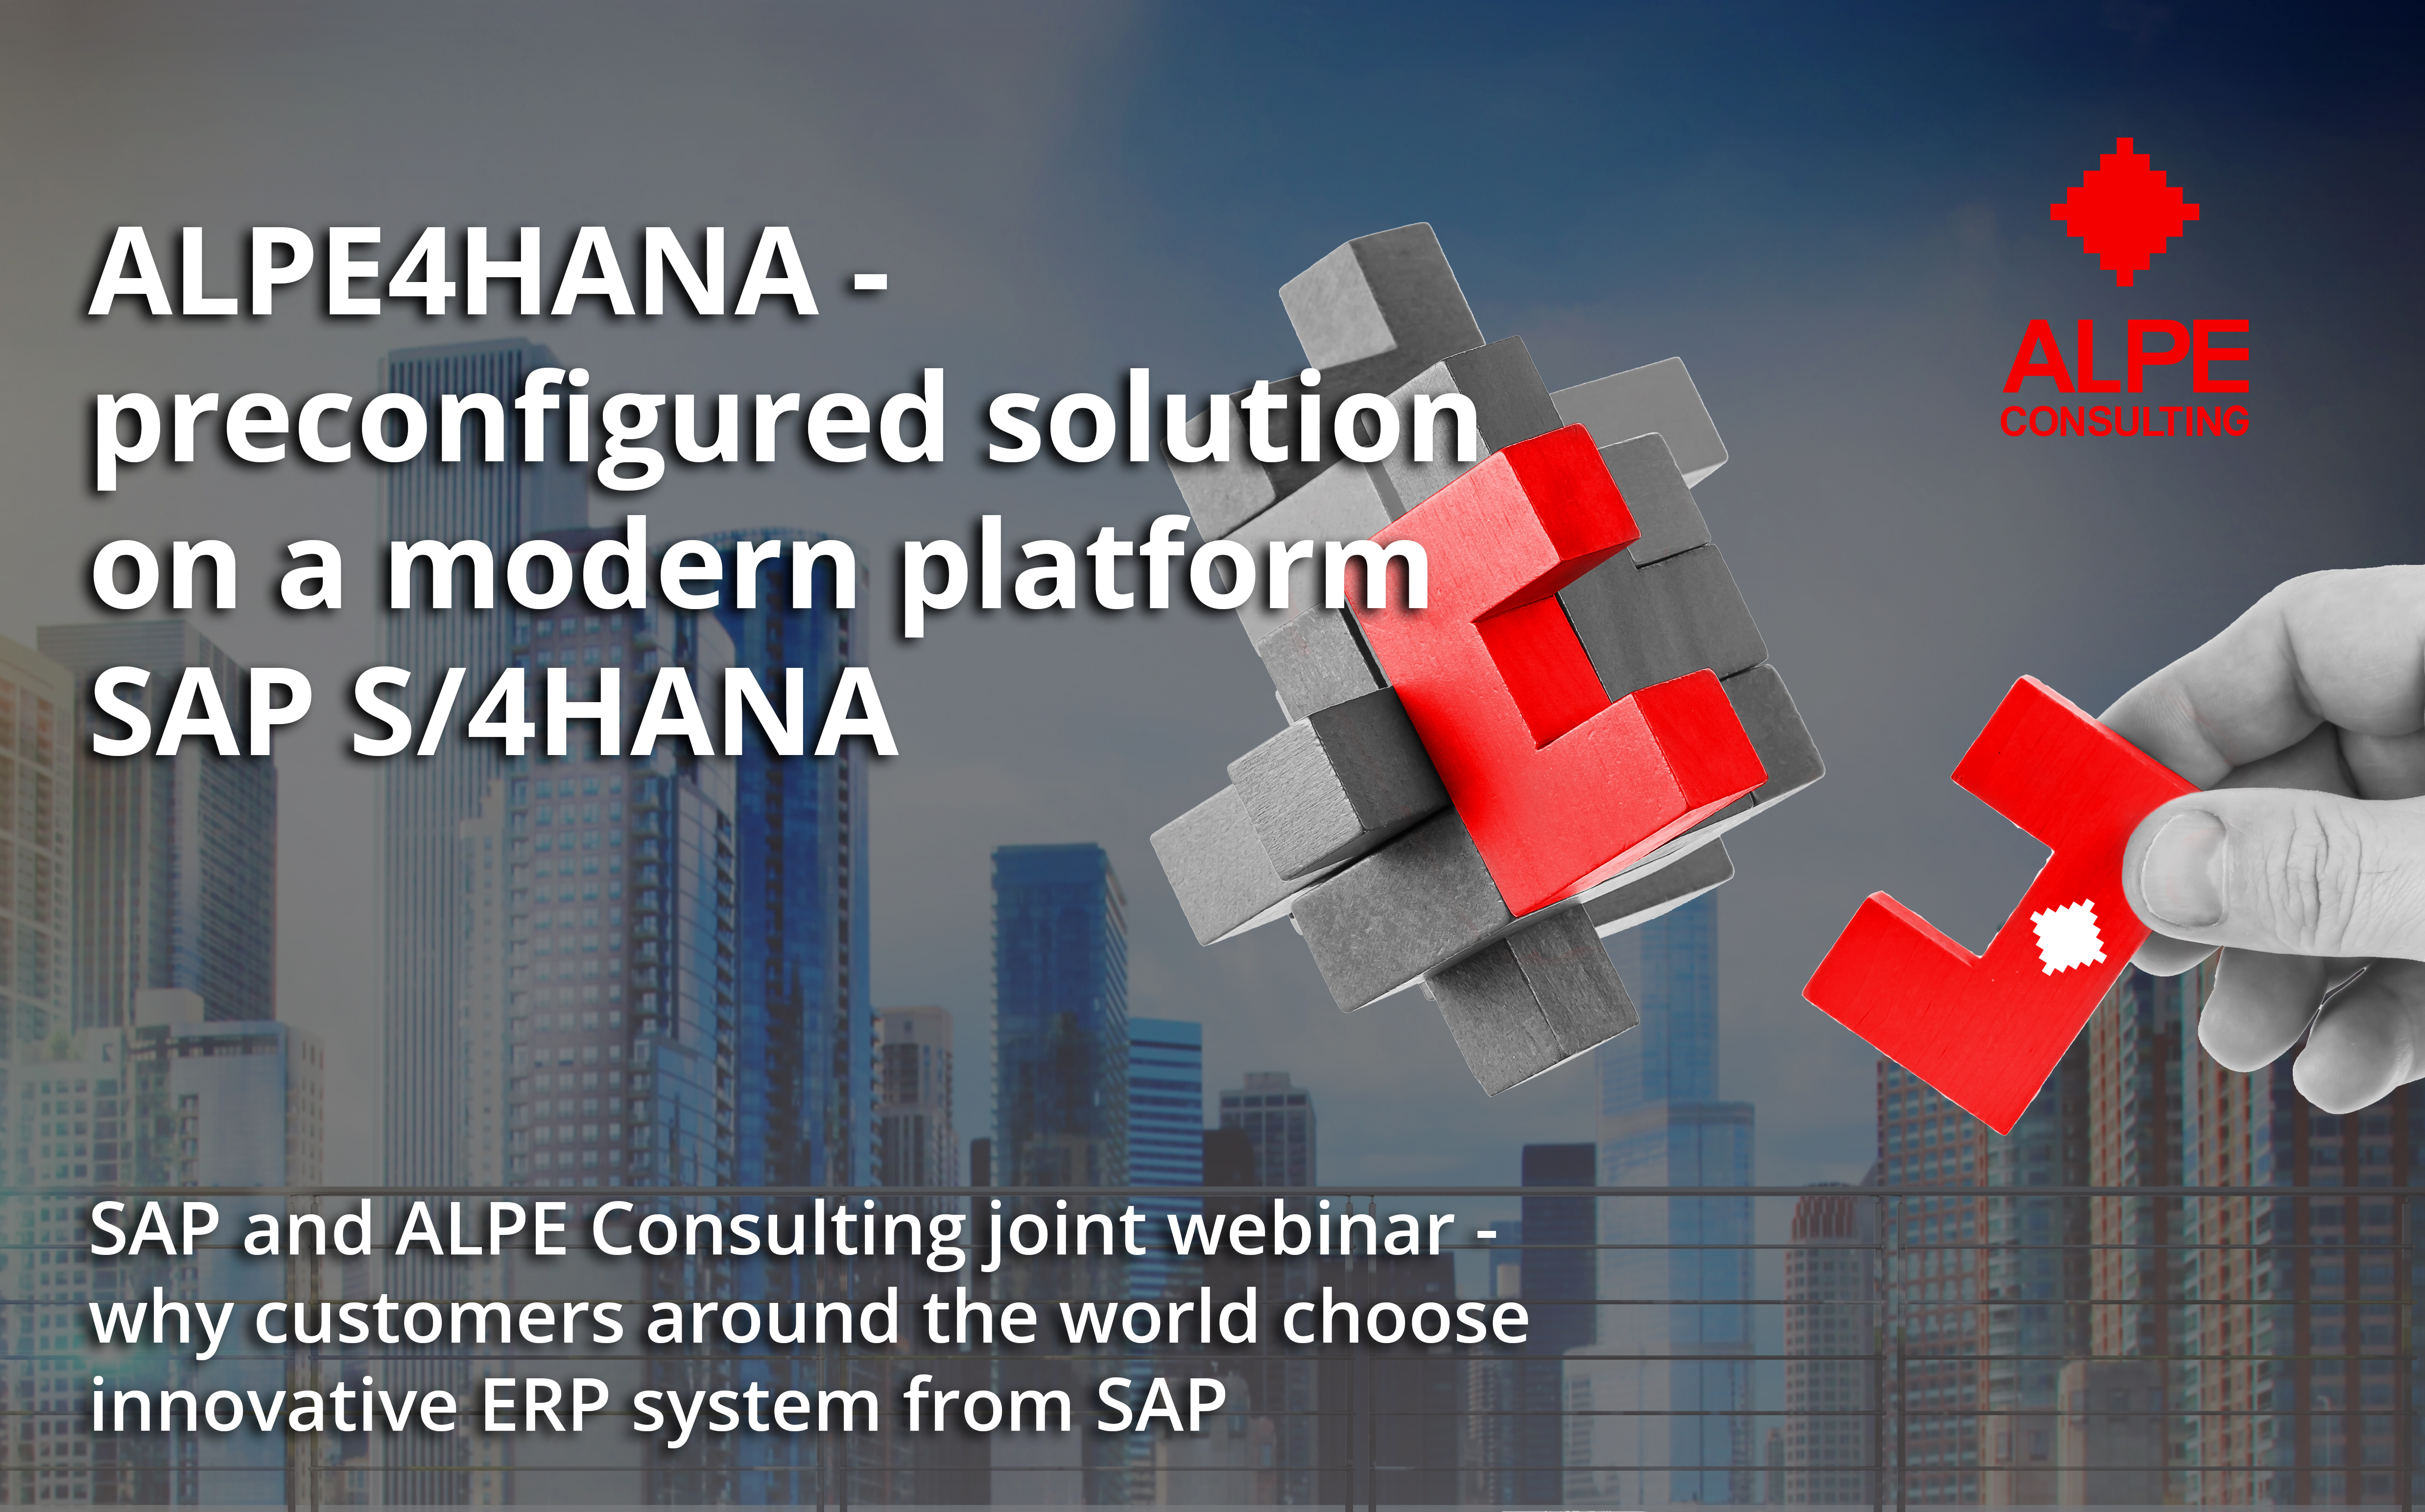 On May 13, a joint webinar of SAP and ALPE consulting took place on the pre-configured ALPE4HANA solution